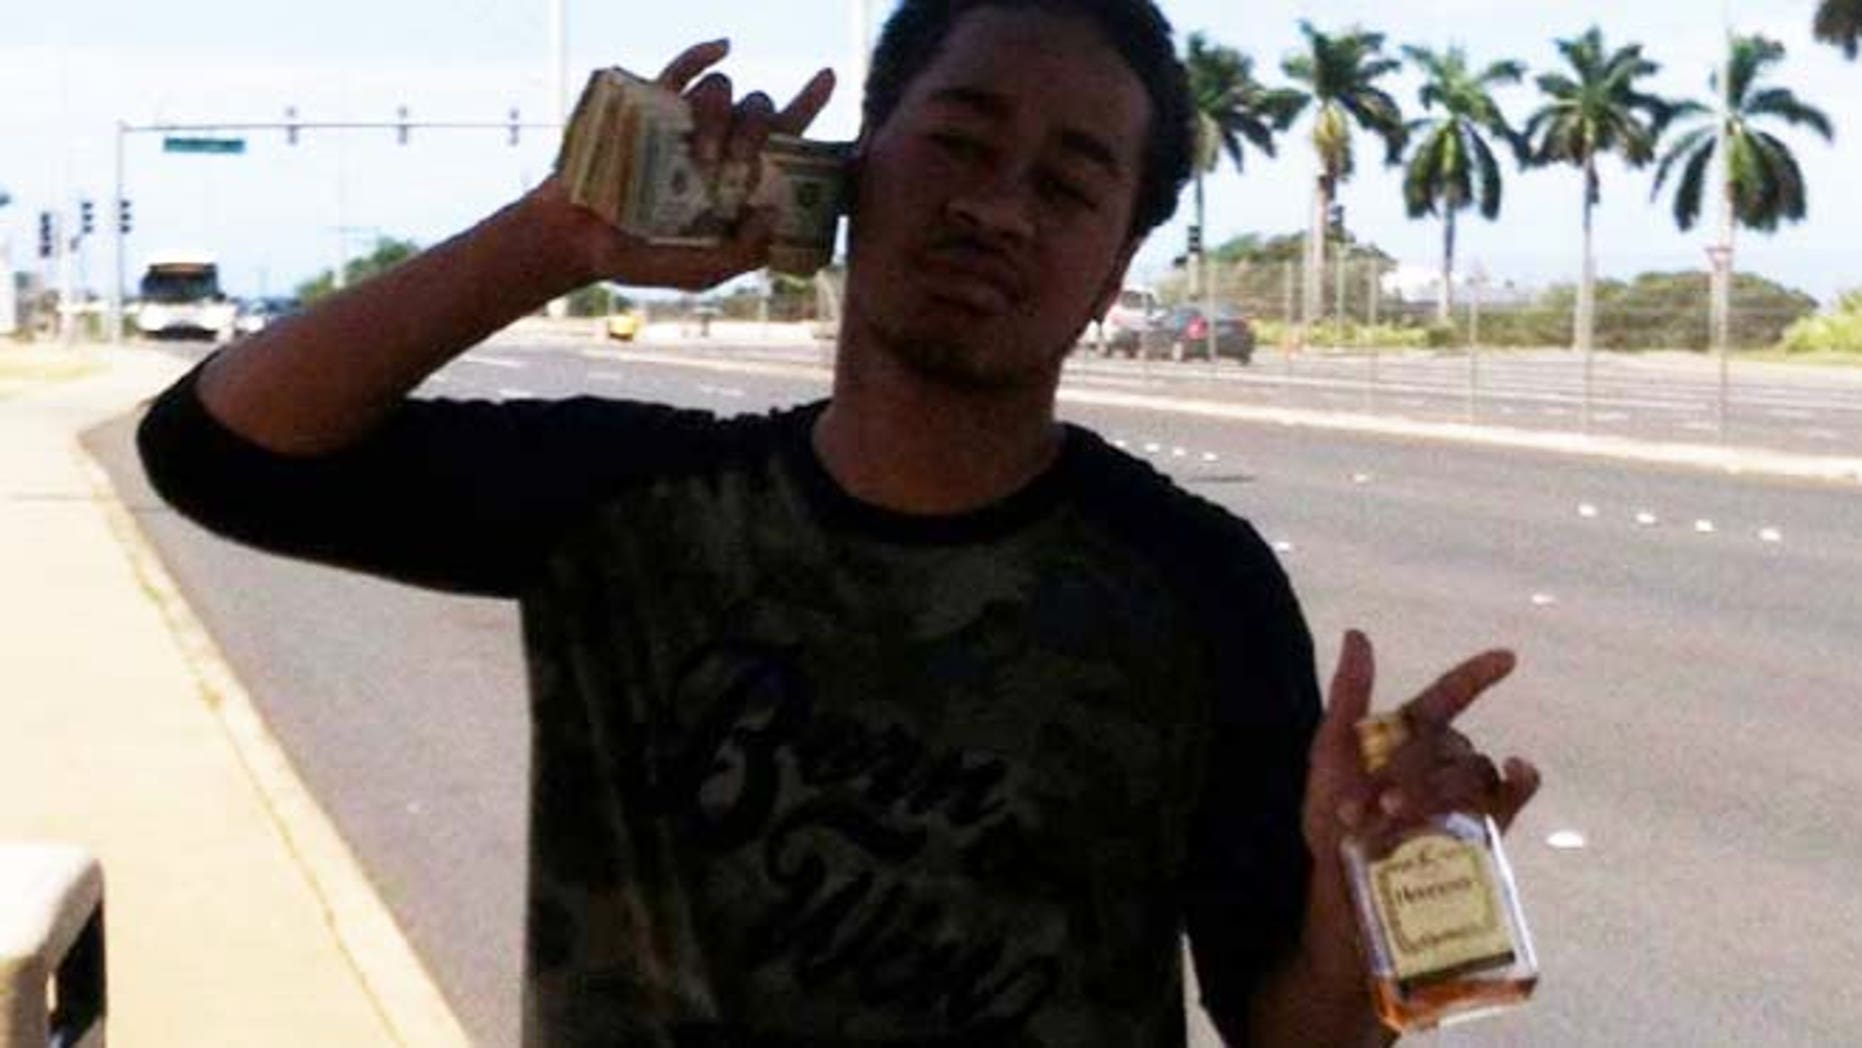 Kalani Watson aka Kiki Seui posts himself on his Facebook account with wads of cash two days after allegedly robbing a Reynolds Recycling center of $500. (HawaiiReporter.com)